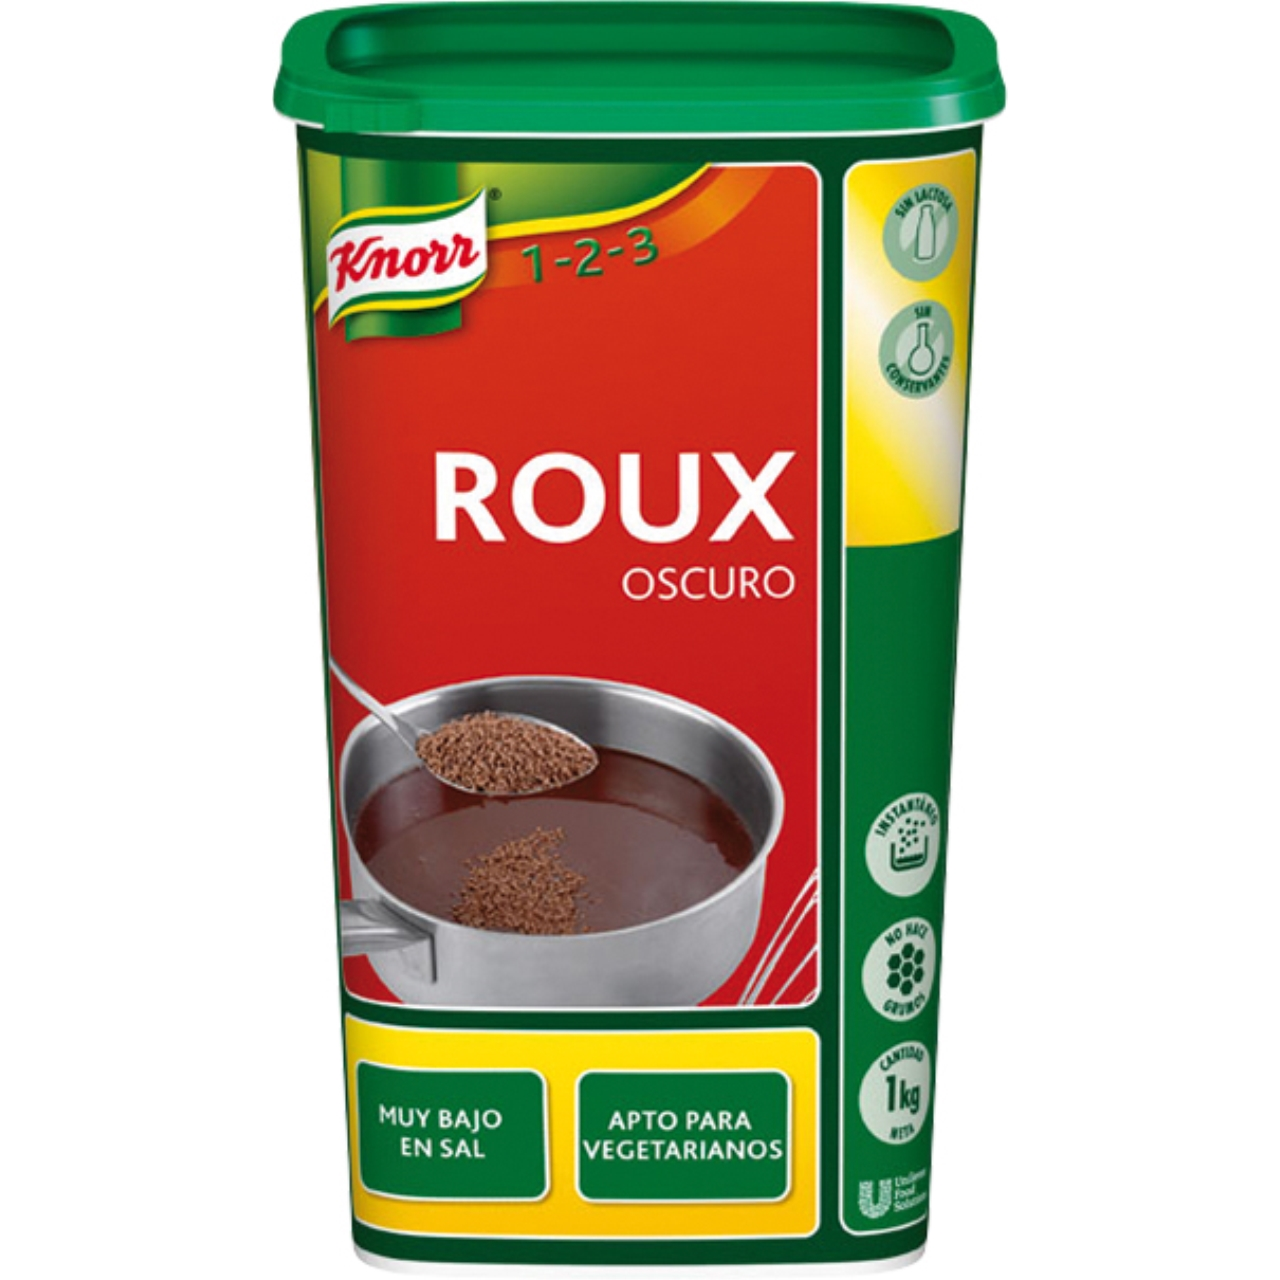 Roux oscuro 1kg. Knorr